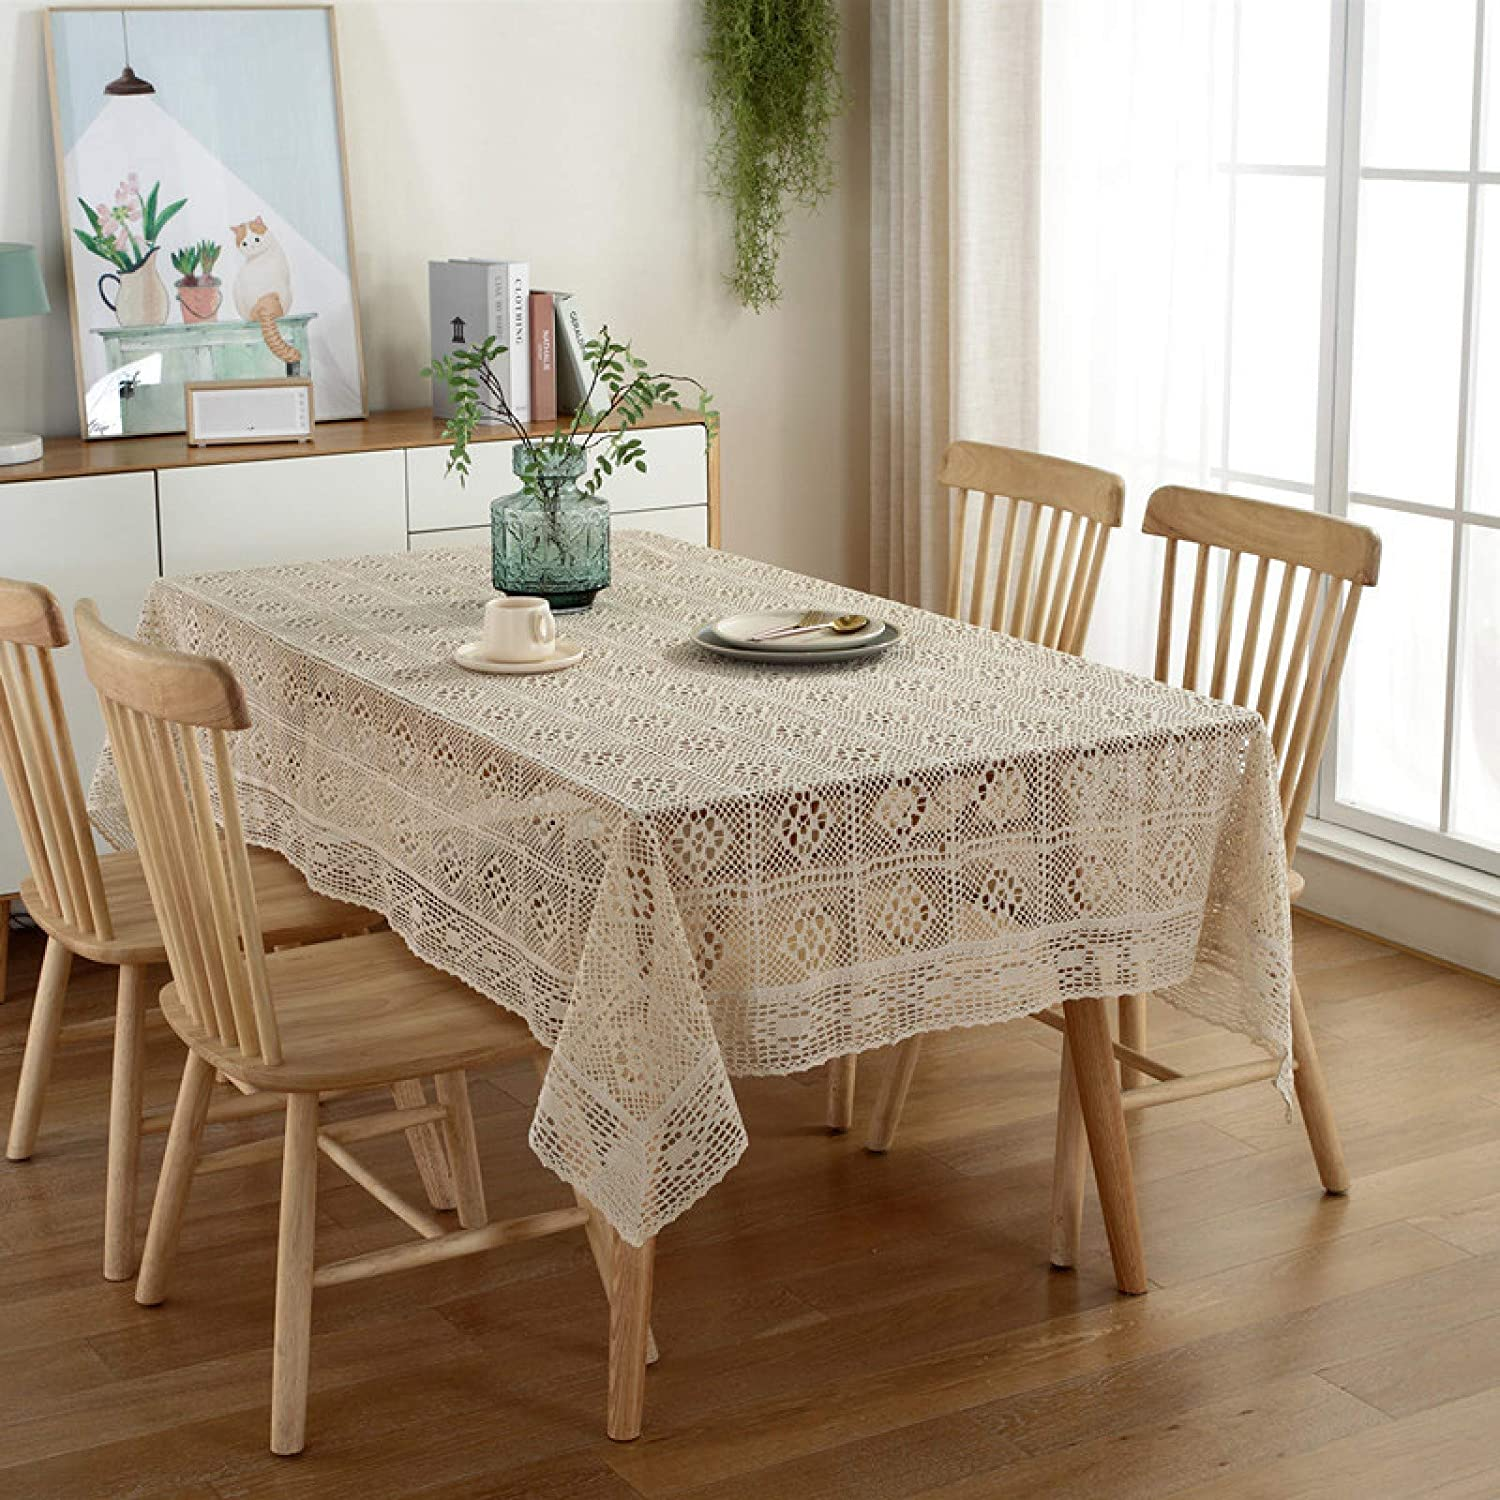 Decorative 40% OFF Cheap Sale Fabric OFFicial store Table Cover for and Indoor UseKnitted Outdoor